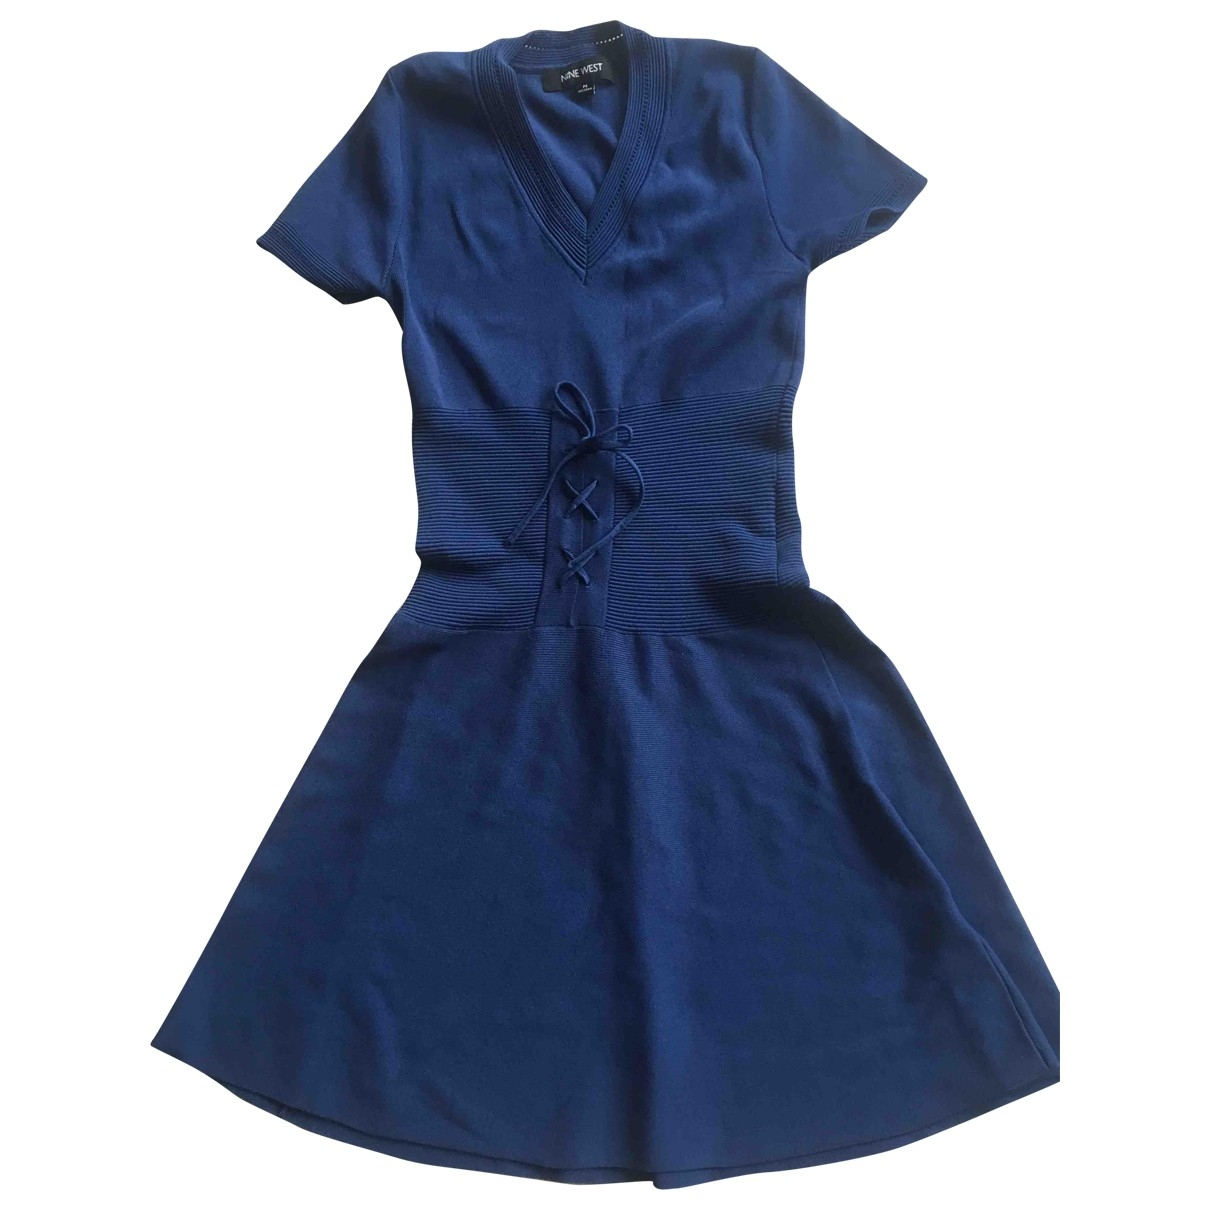 Nine West \N Blue dress for Women M International